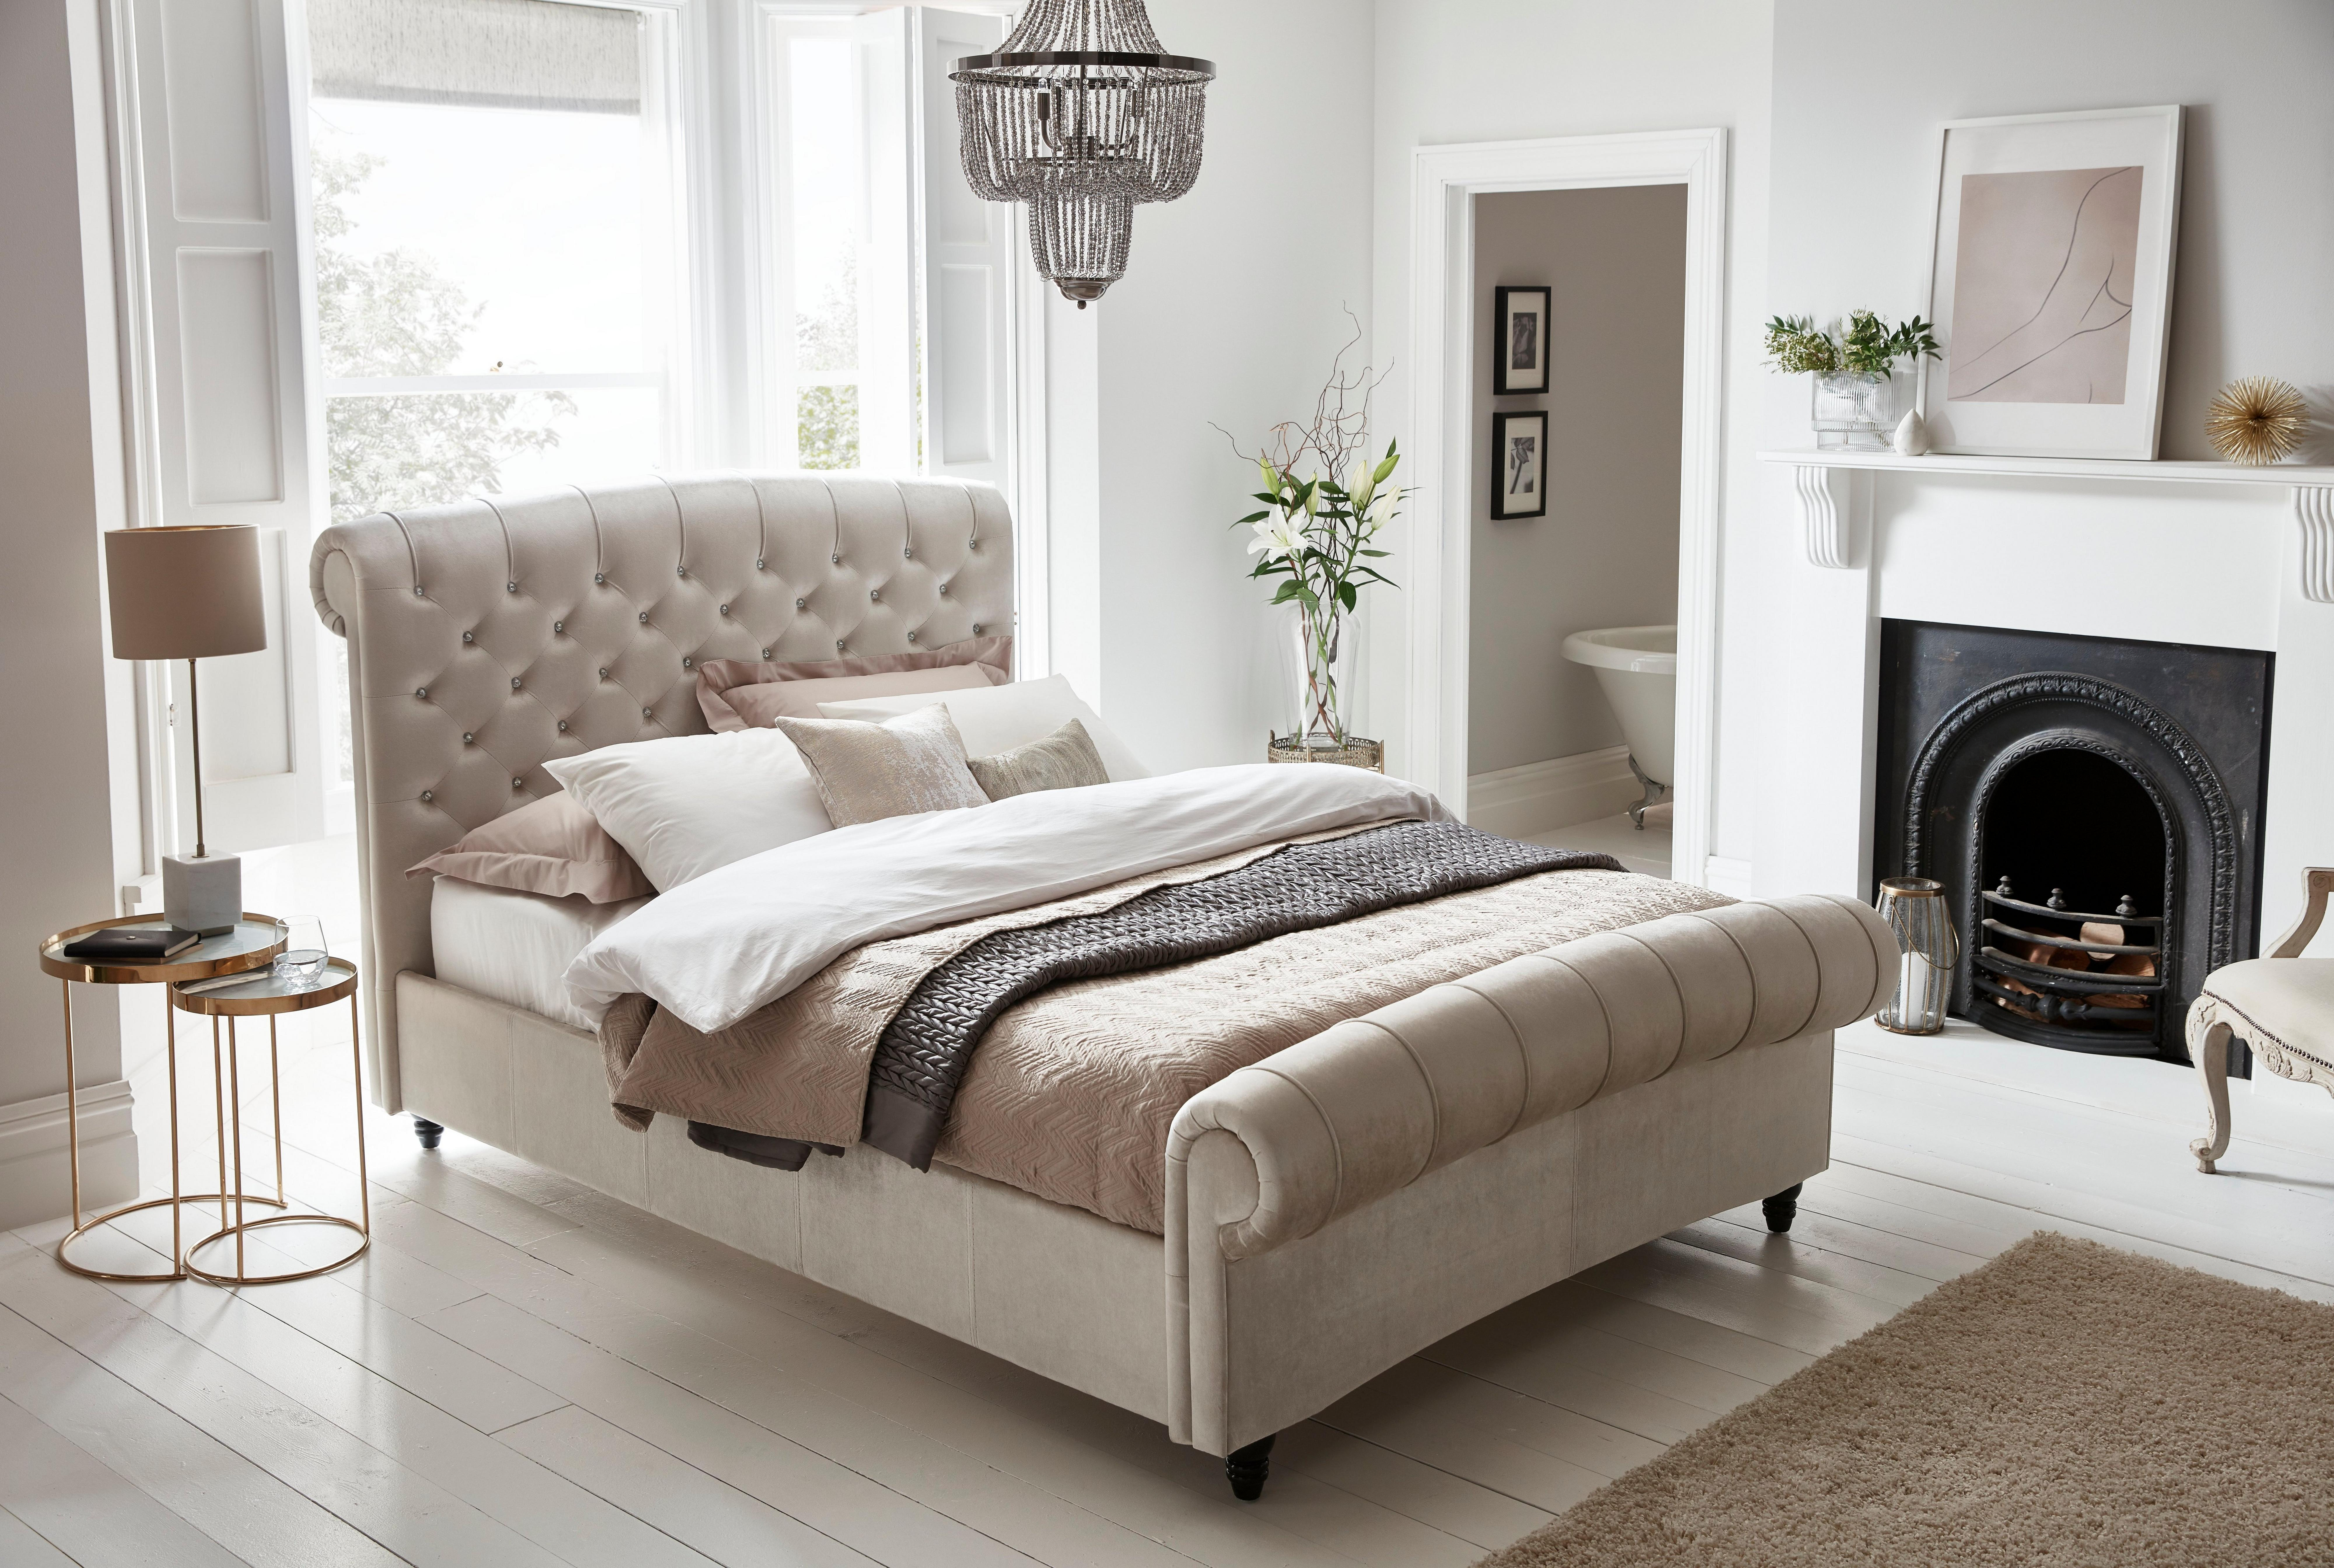 Picture of: Shabby Chic Bedroom Ideas Get The Look Dreams